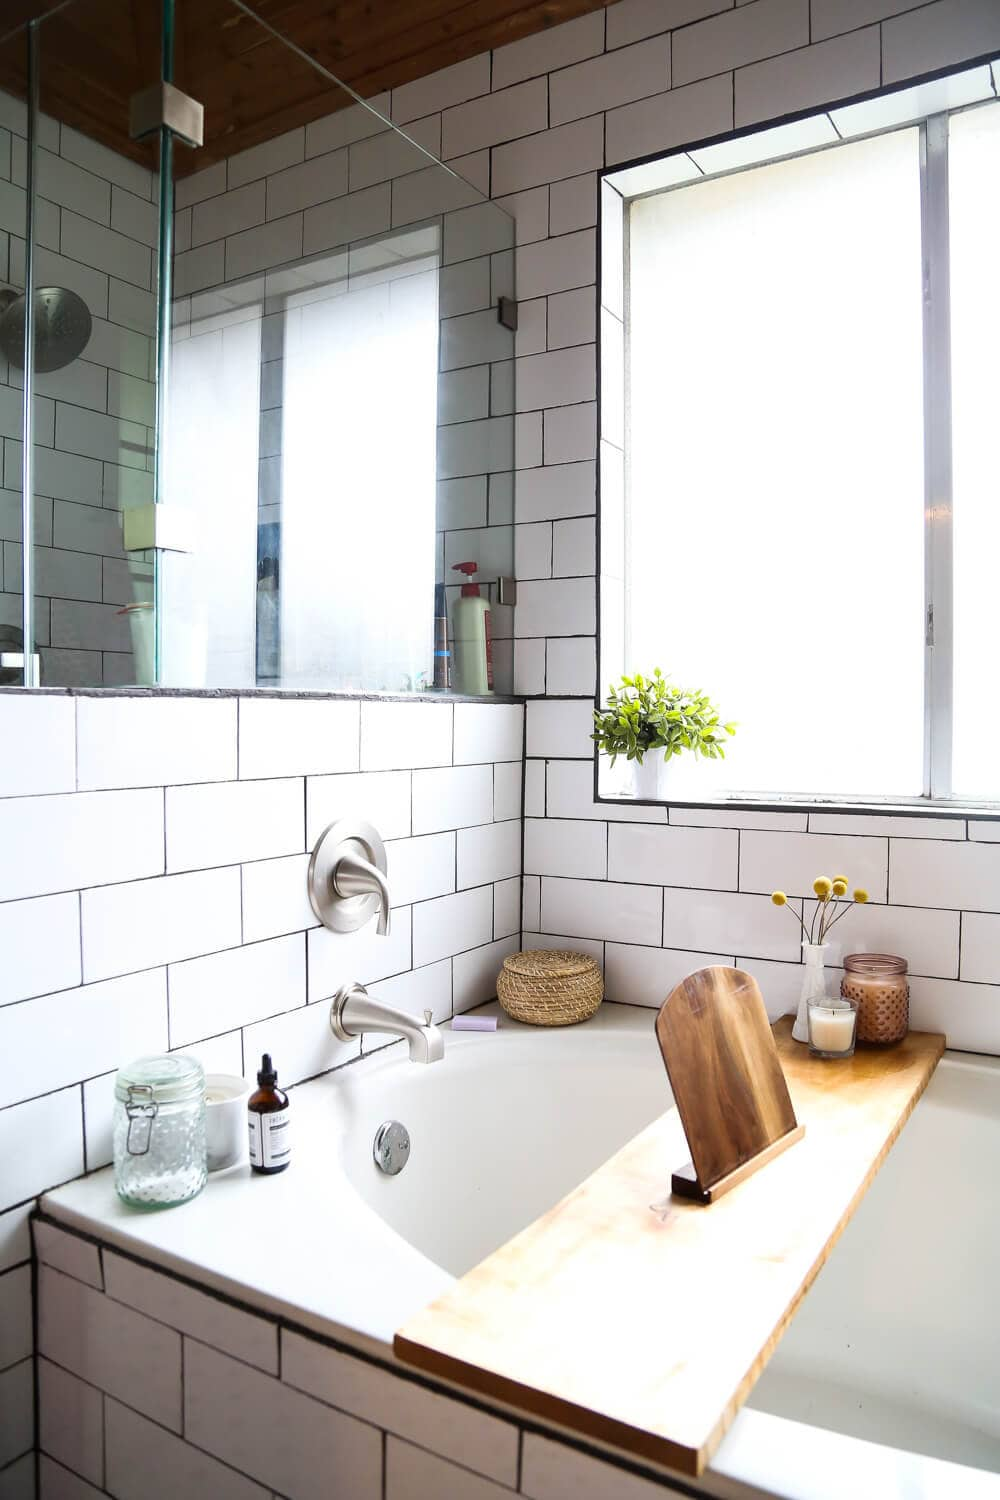 How To Remodel A Bathroom   Ideas For A Bathroom Remodel With White Subway  Tile,